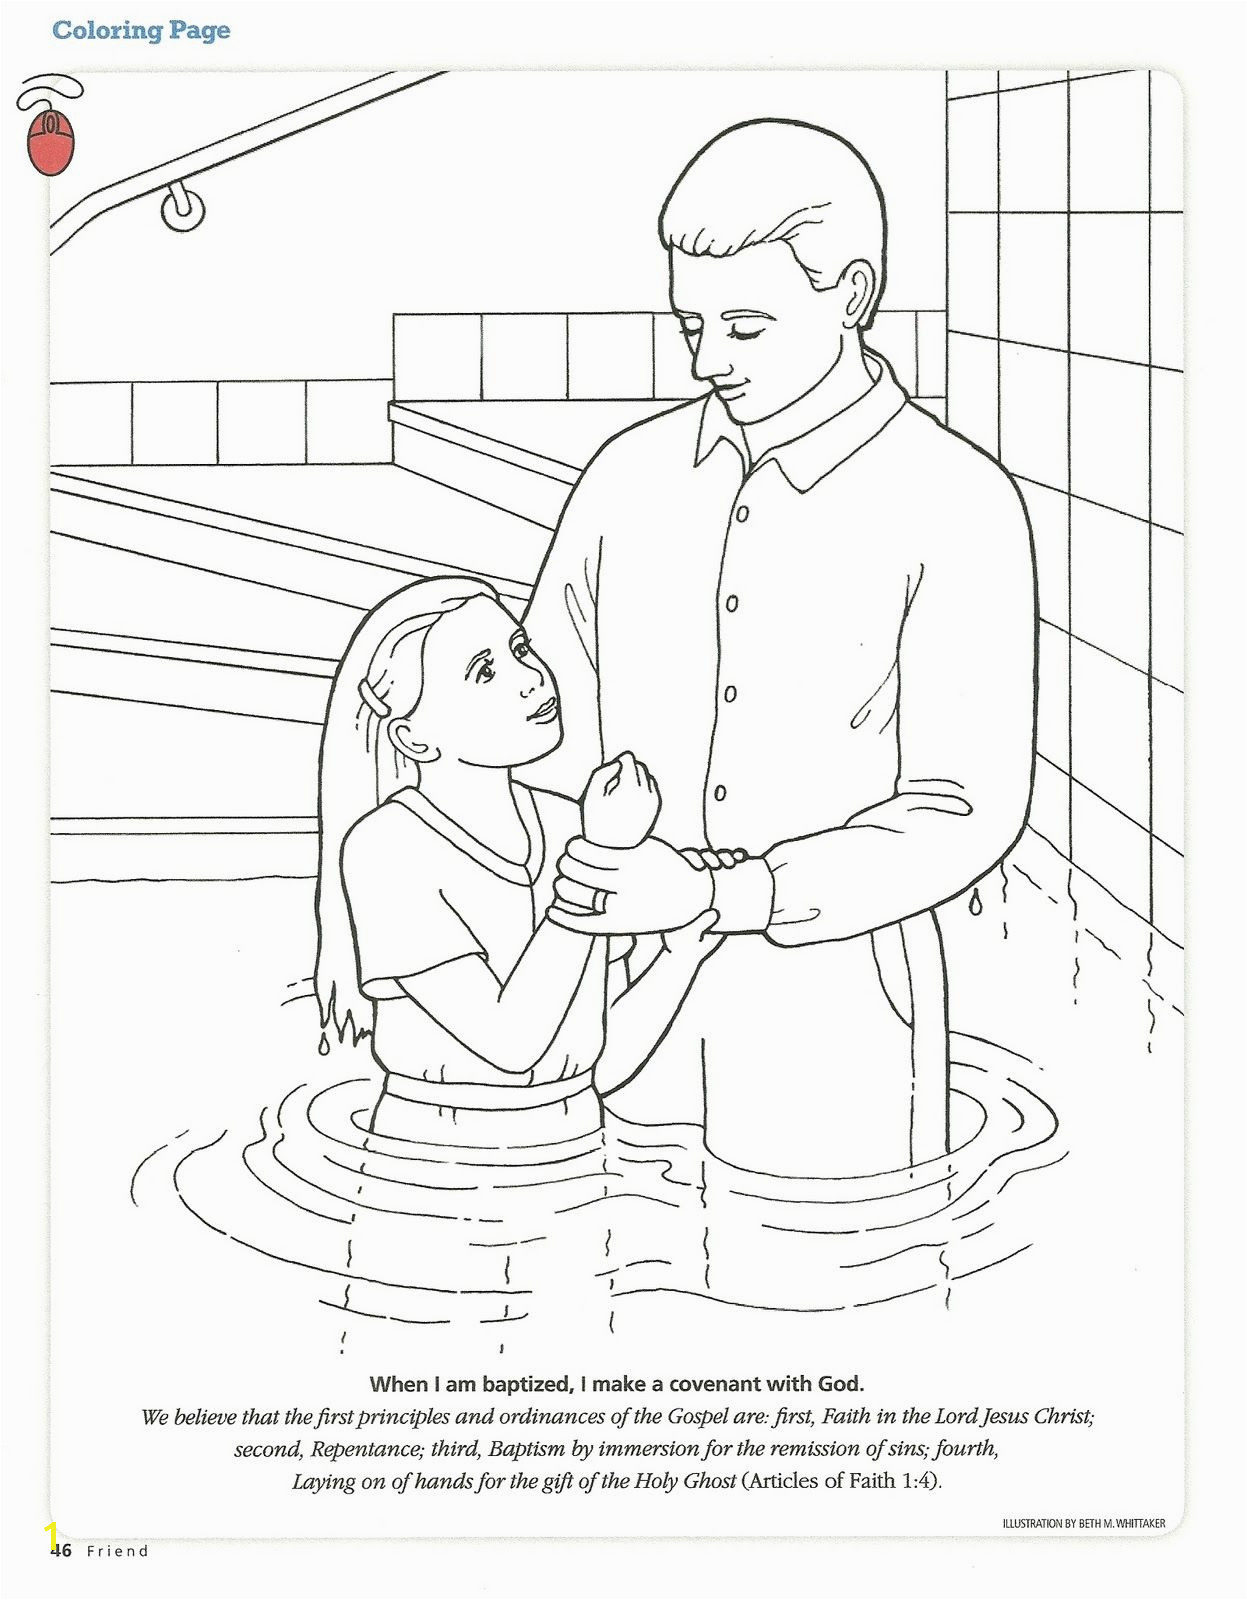 Baptism Coloring Pages Helping Others Coloring Pages